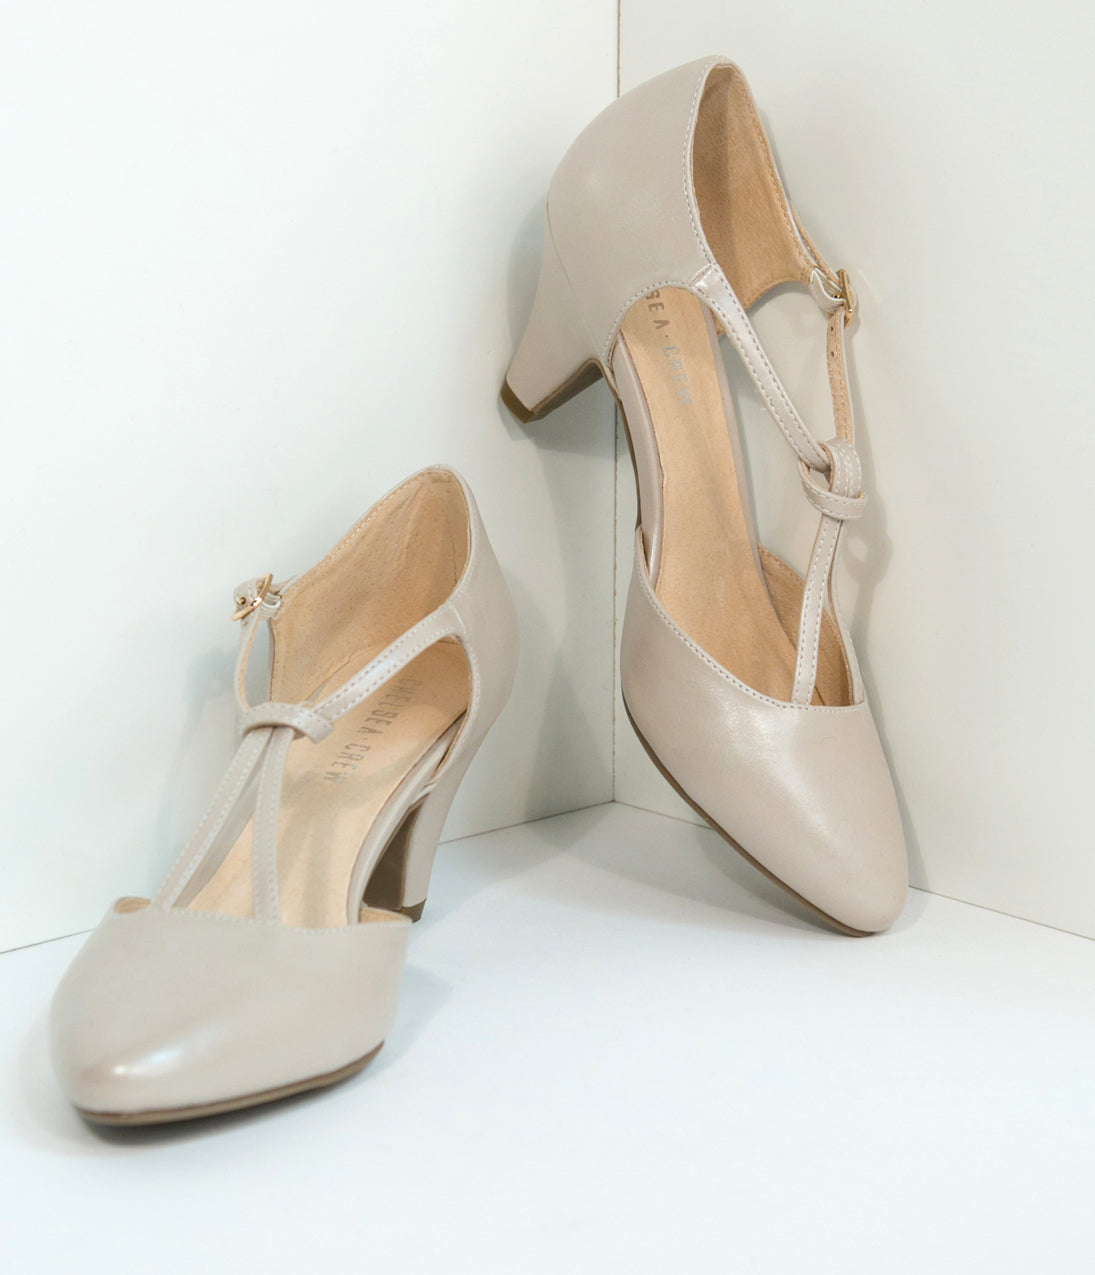 1920s Style Shoes Ivory Champagne Glamour T-Strap Heels $64.00 AT vintagedancer.com